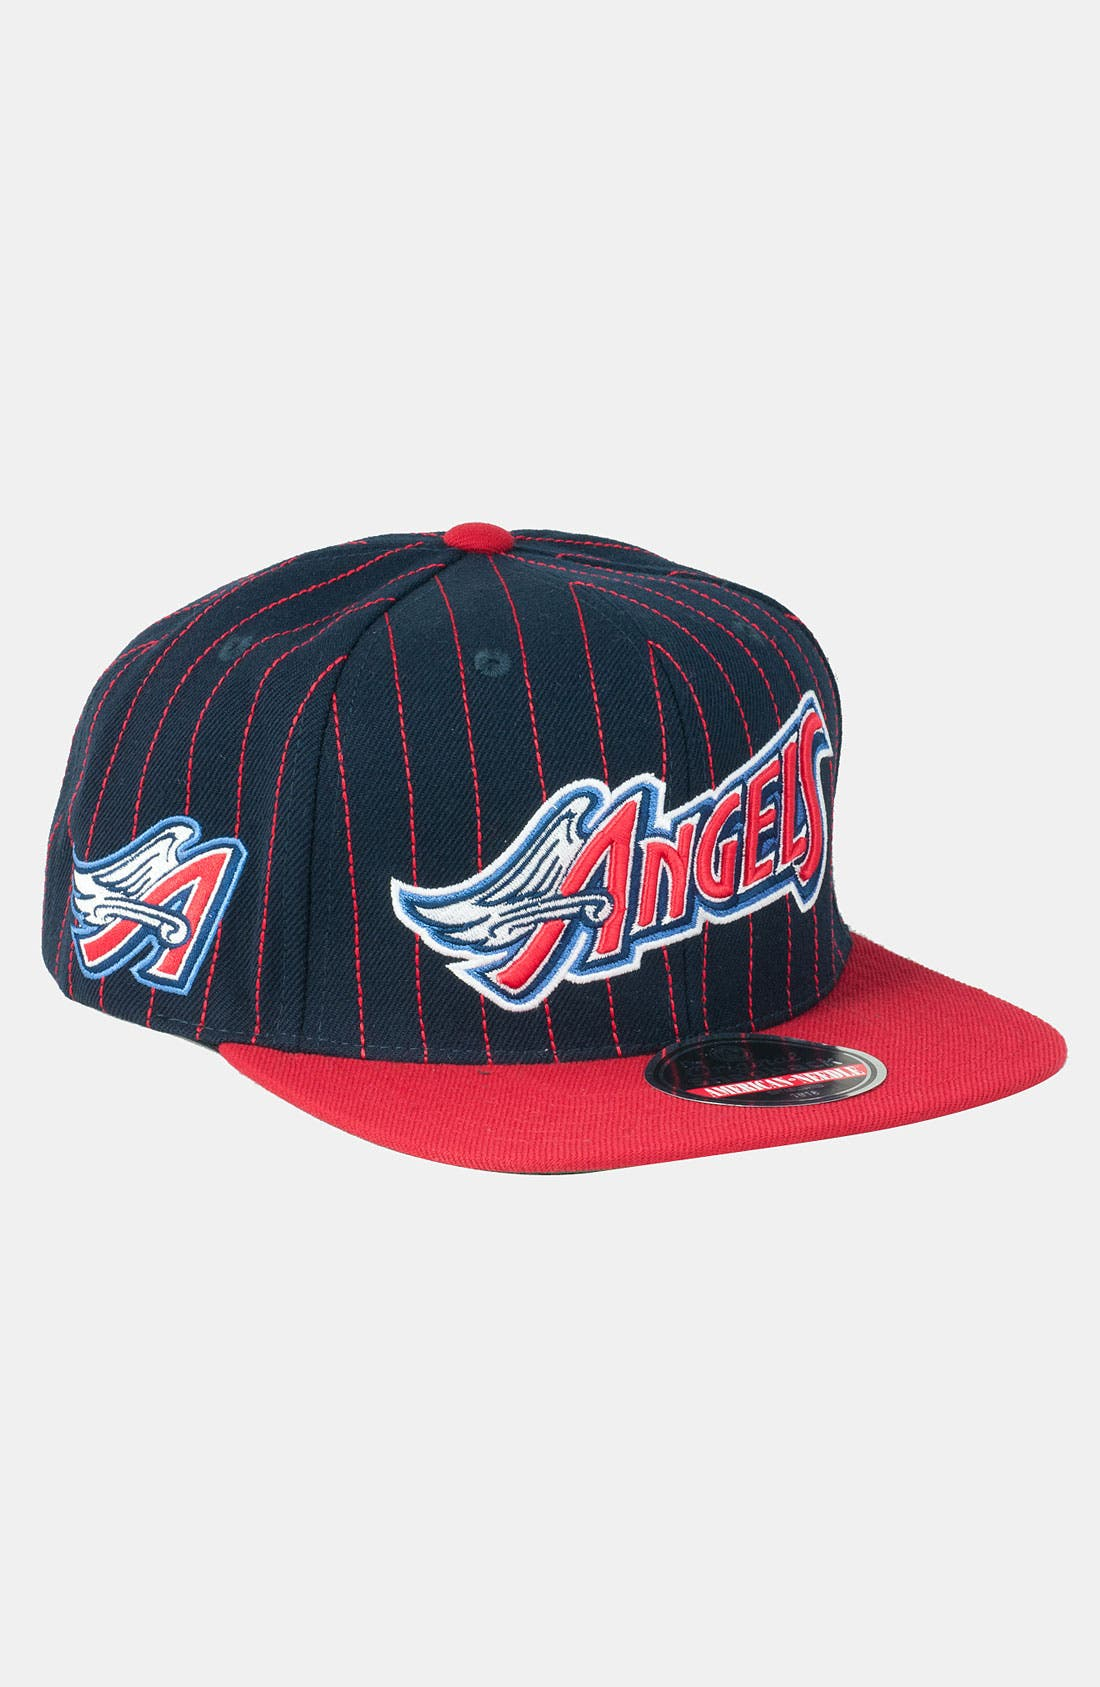 Alternate Image 1 Selected - American Needle 'Angels' Snapback Baseball Cap